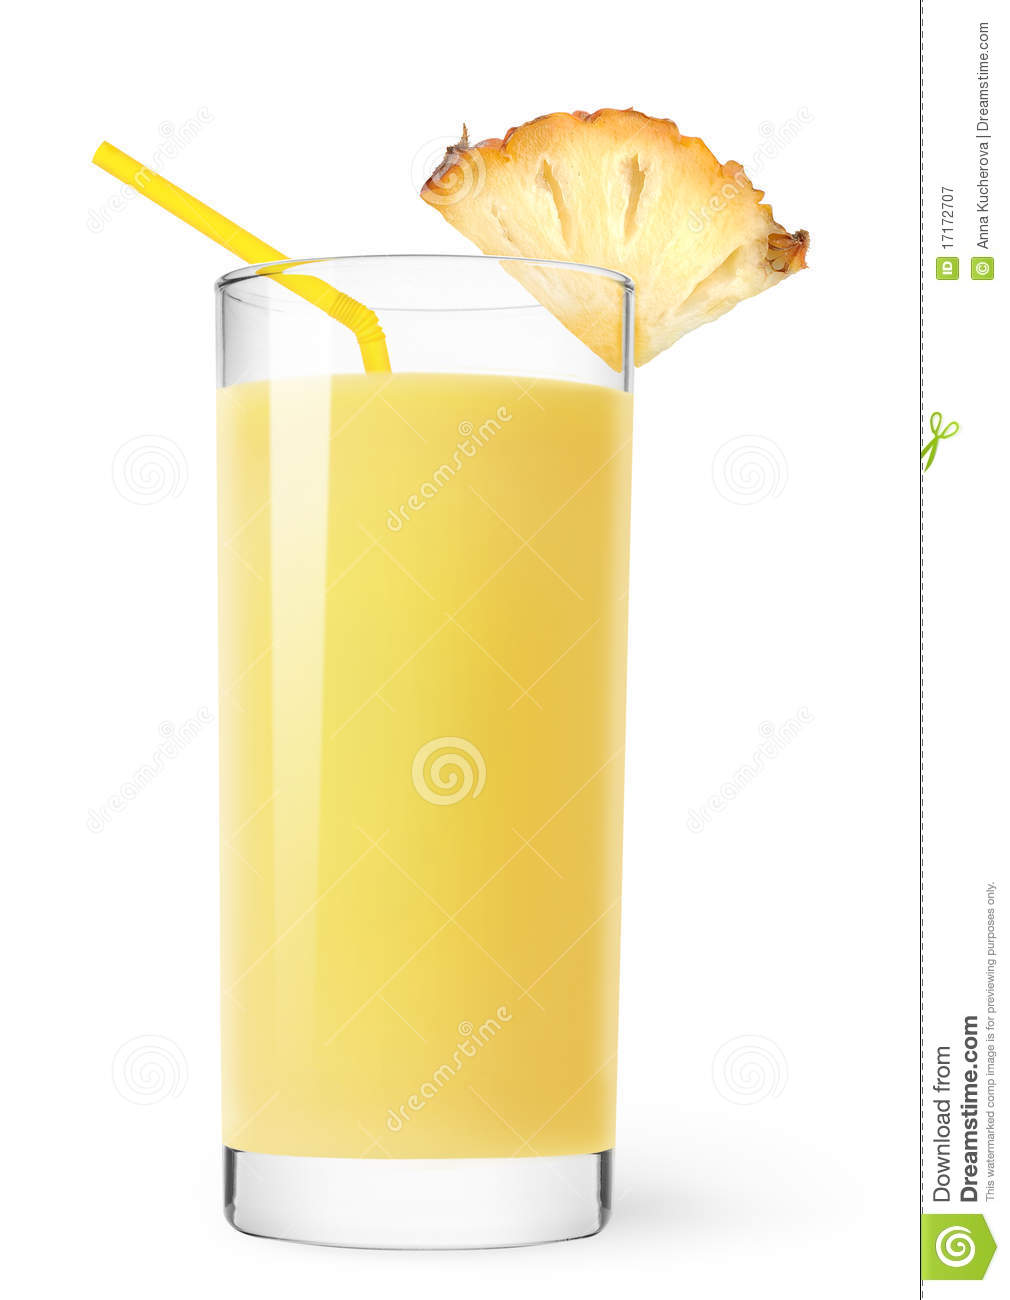 Pineapple Juice Royalty Free Stock Photography - Image: 17172707